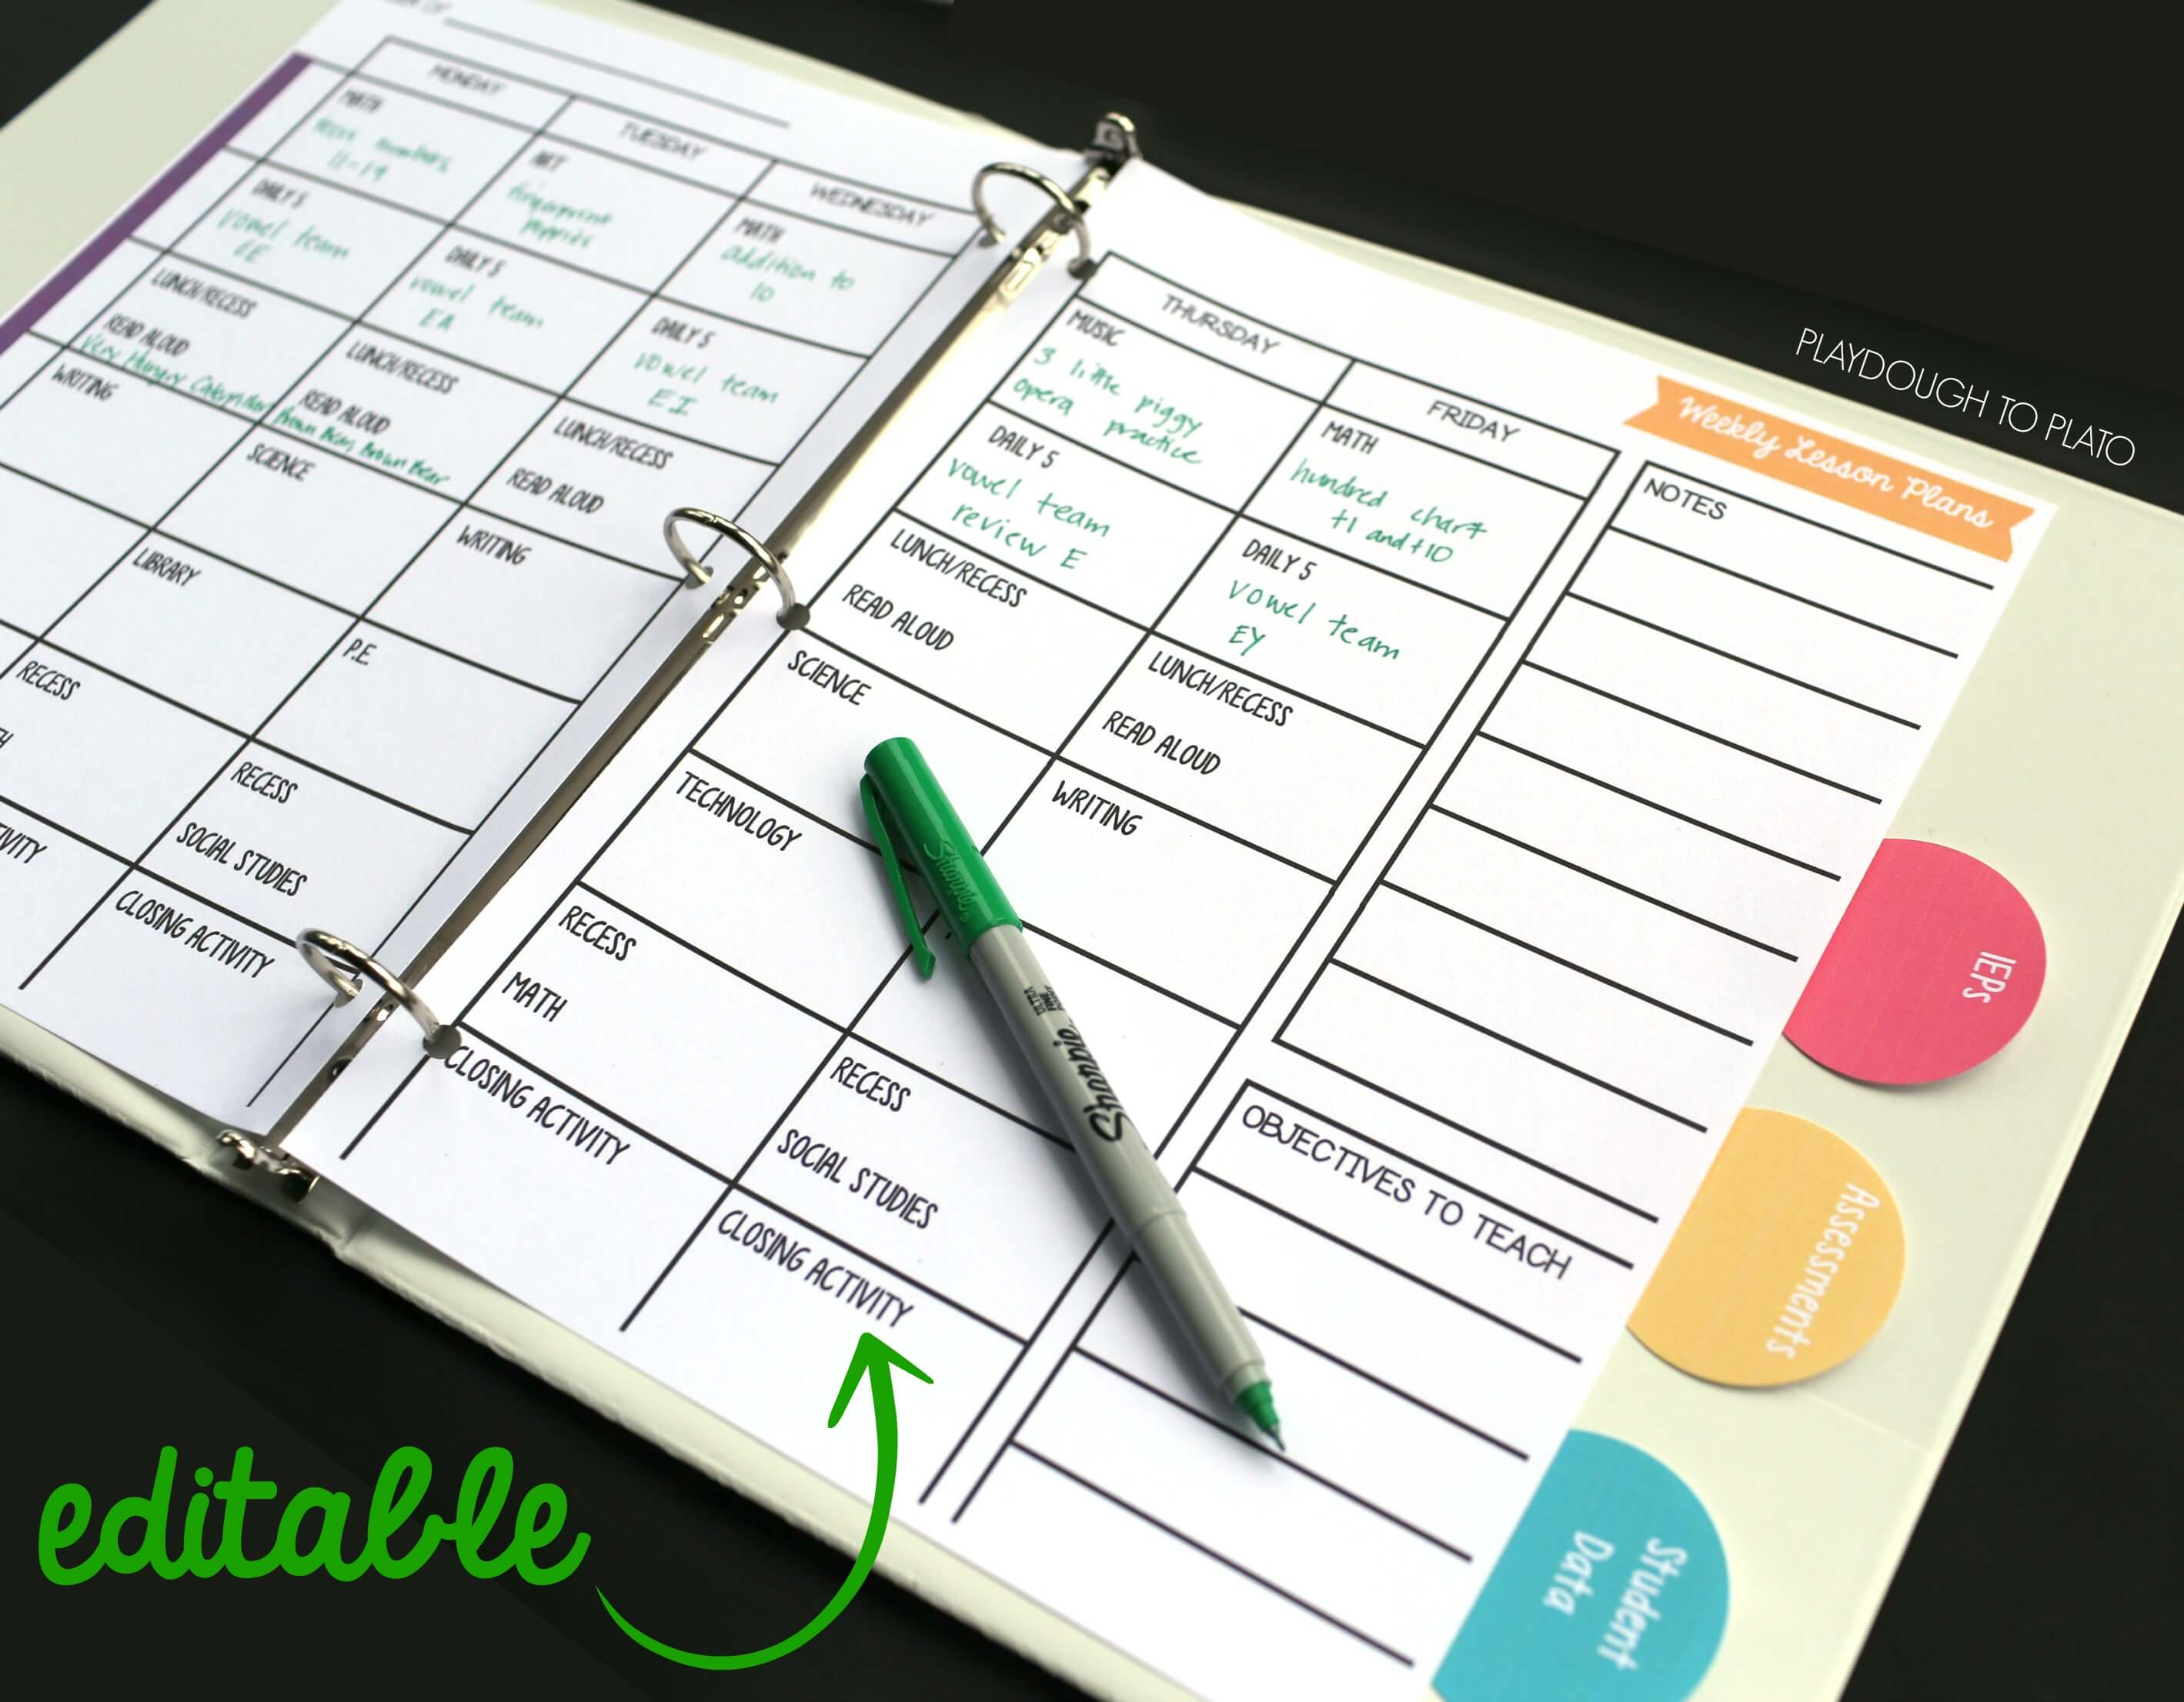 Free Teacher Planner - Playdough To Plato - Free Printable Teacher Planner